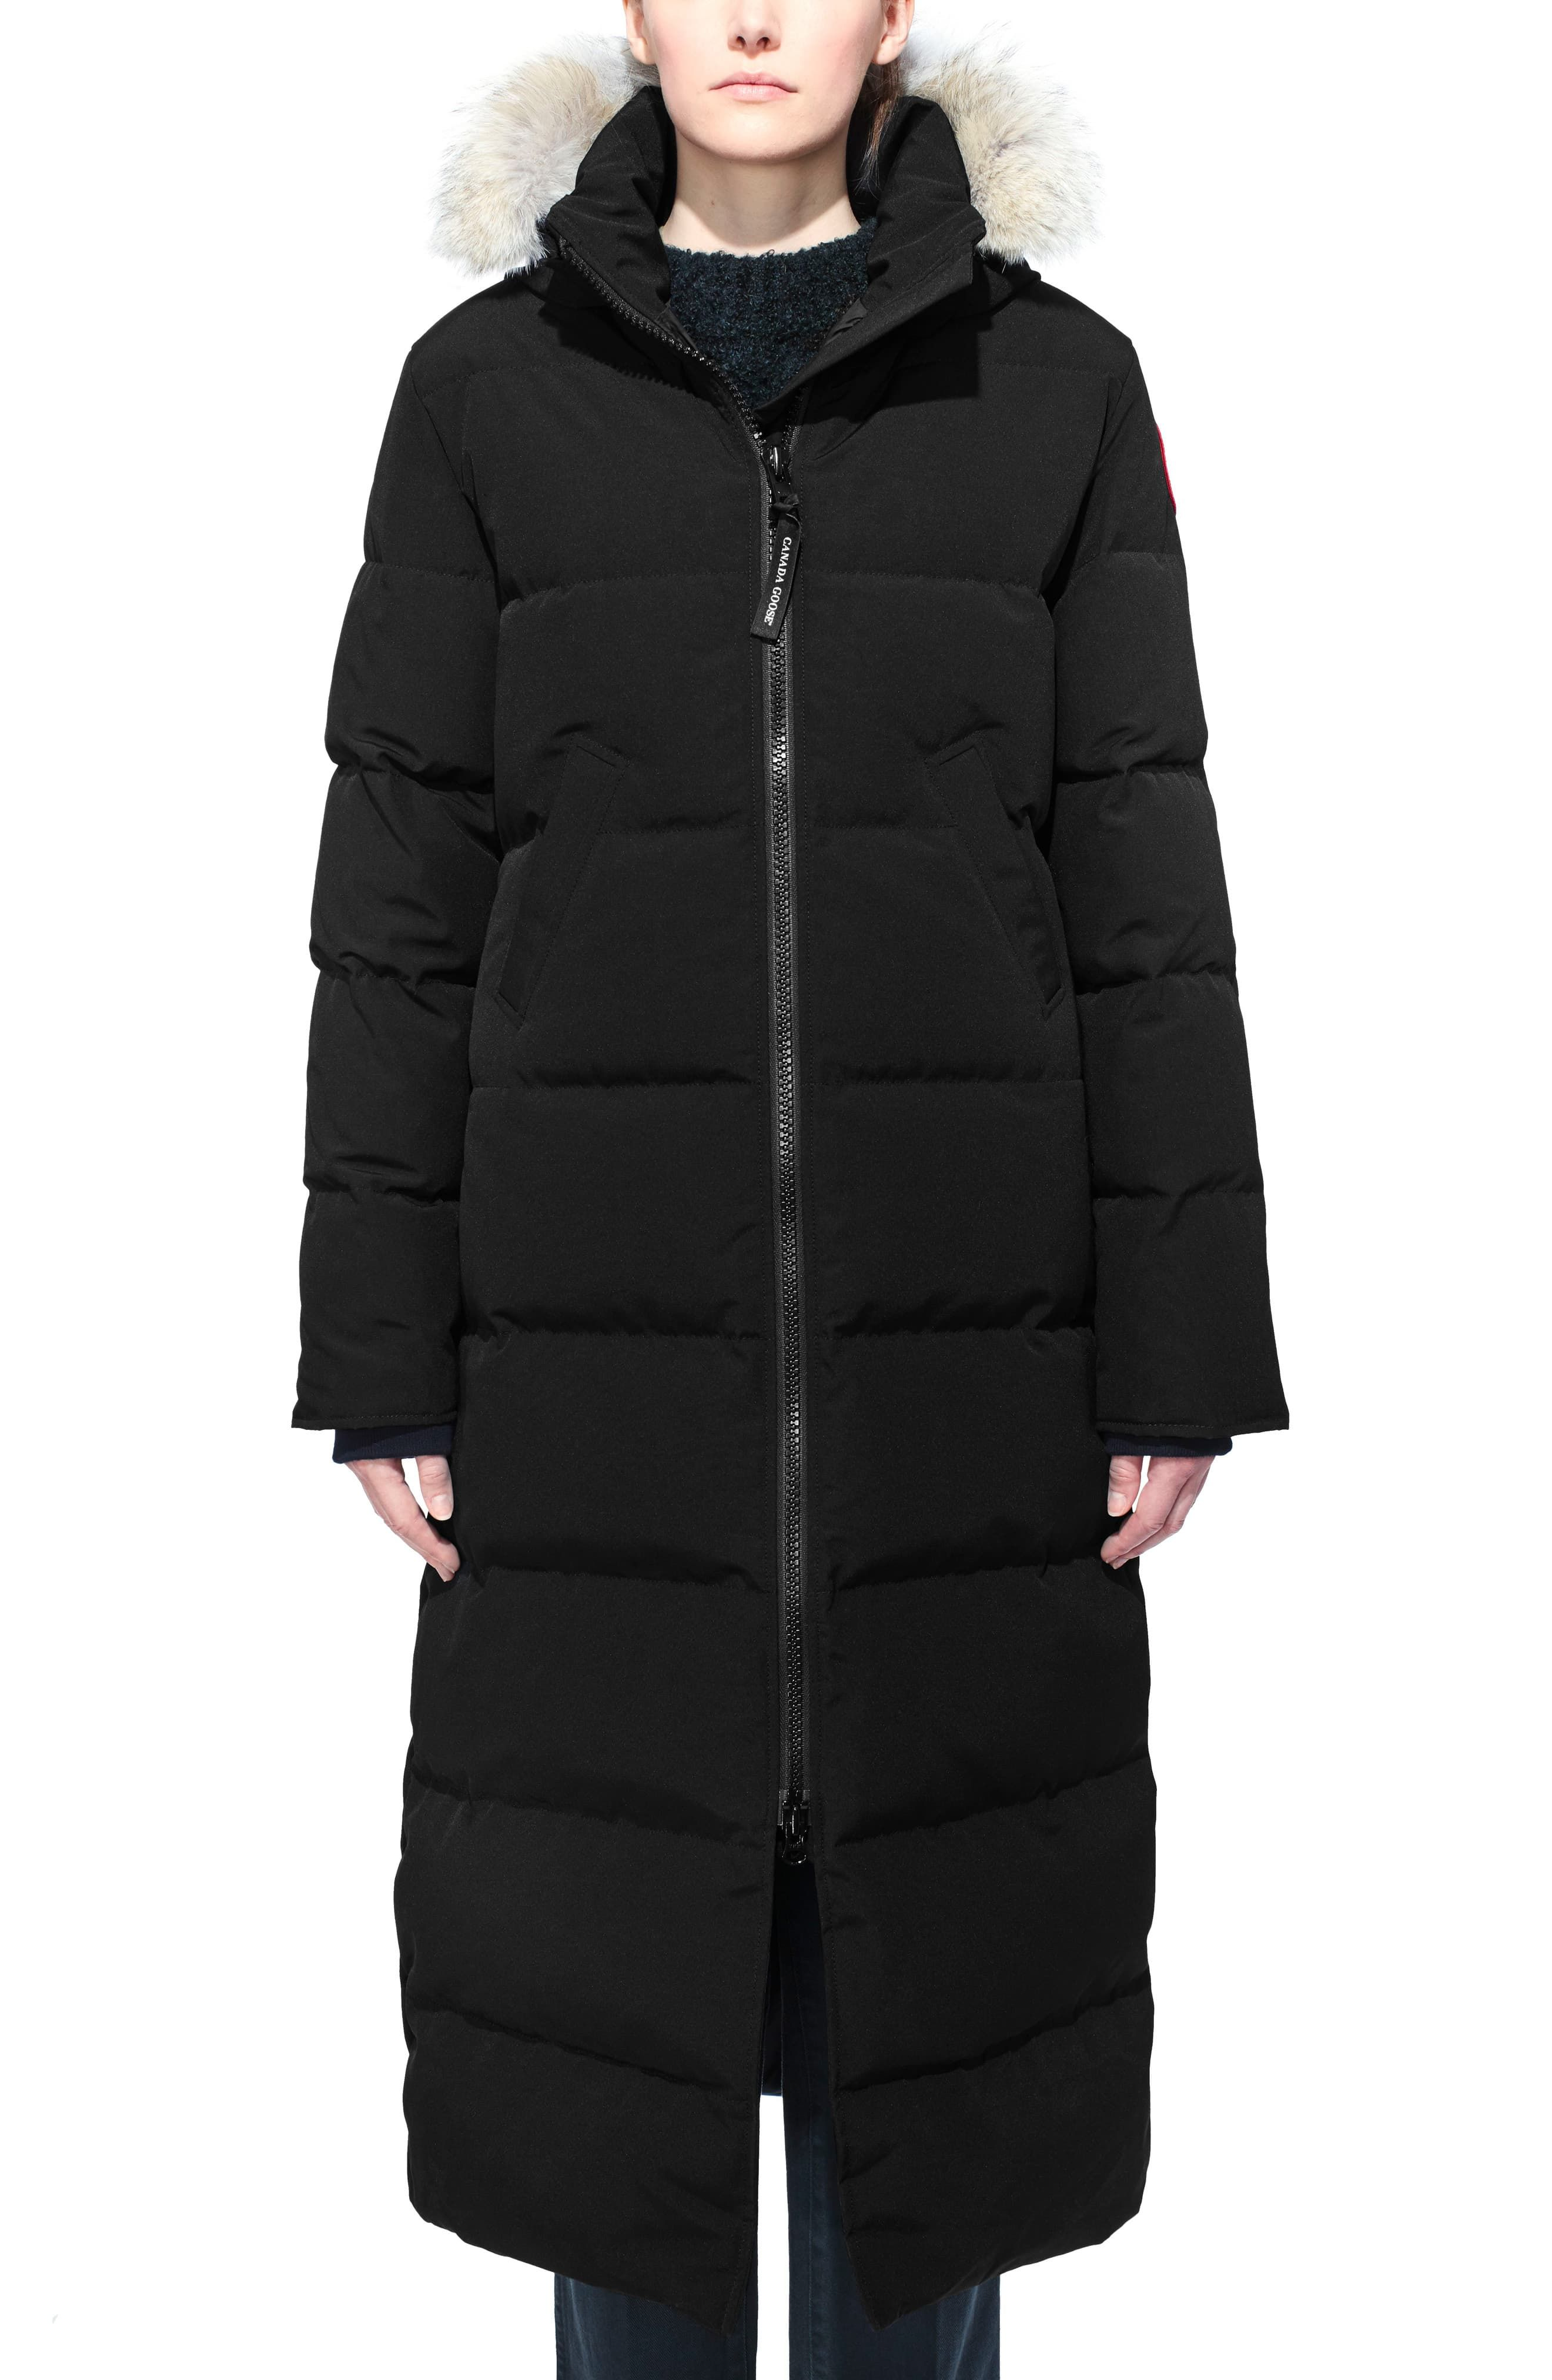 Designer Finds On Sale Hello Fashion Winter Outfits Canada Winter Outfits Parka Outfit